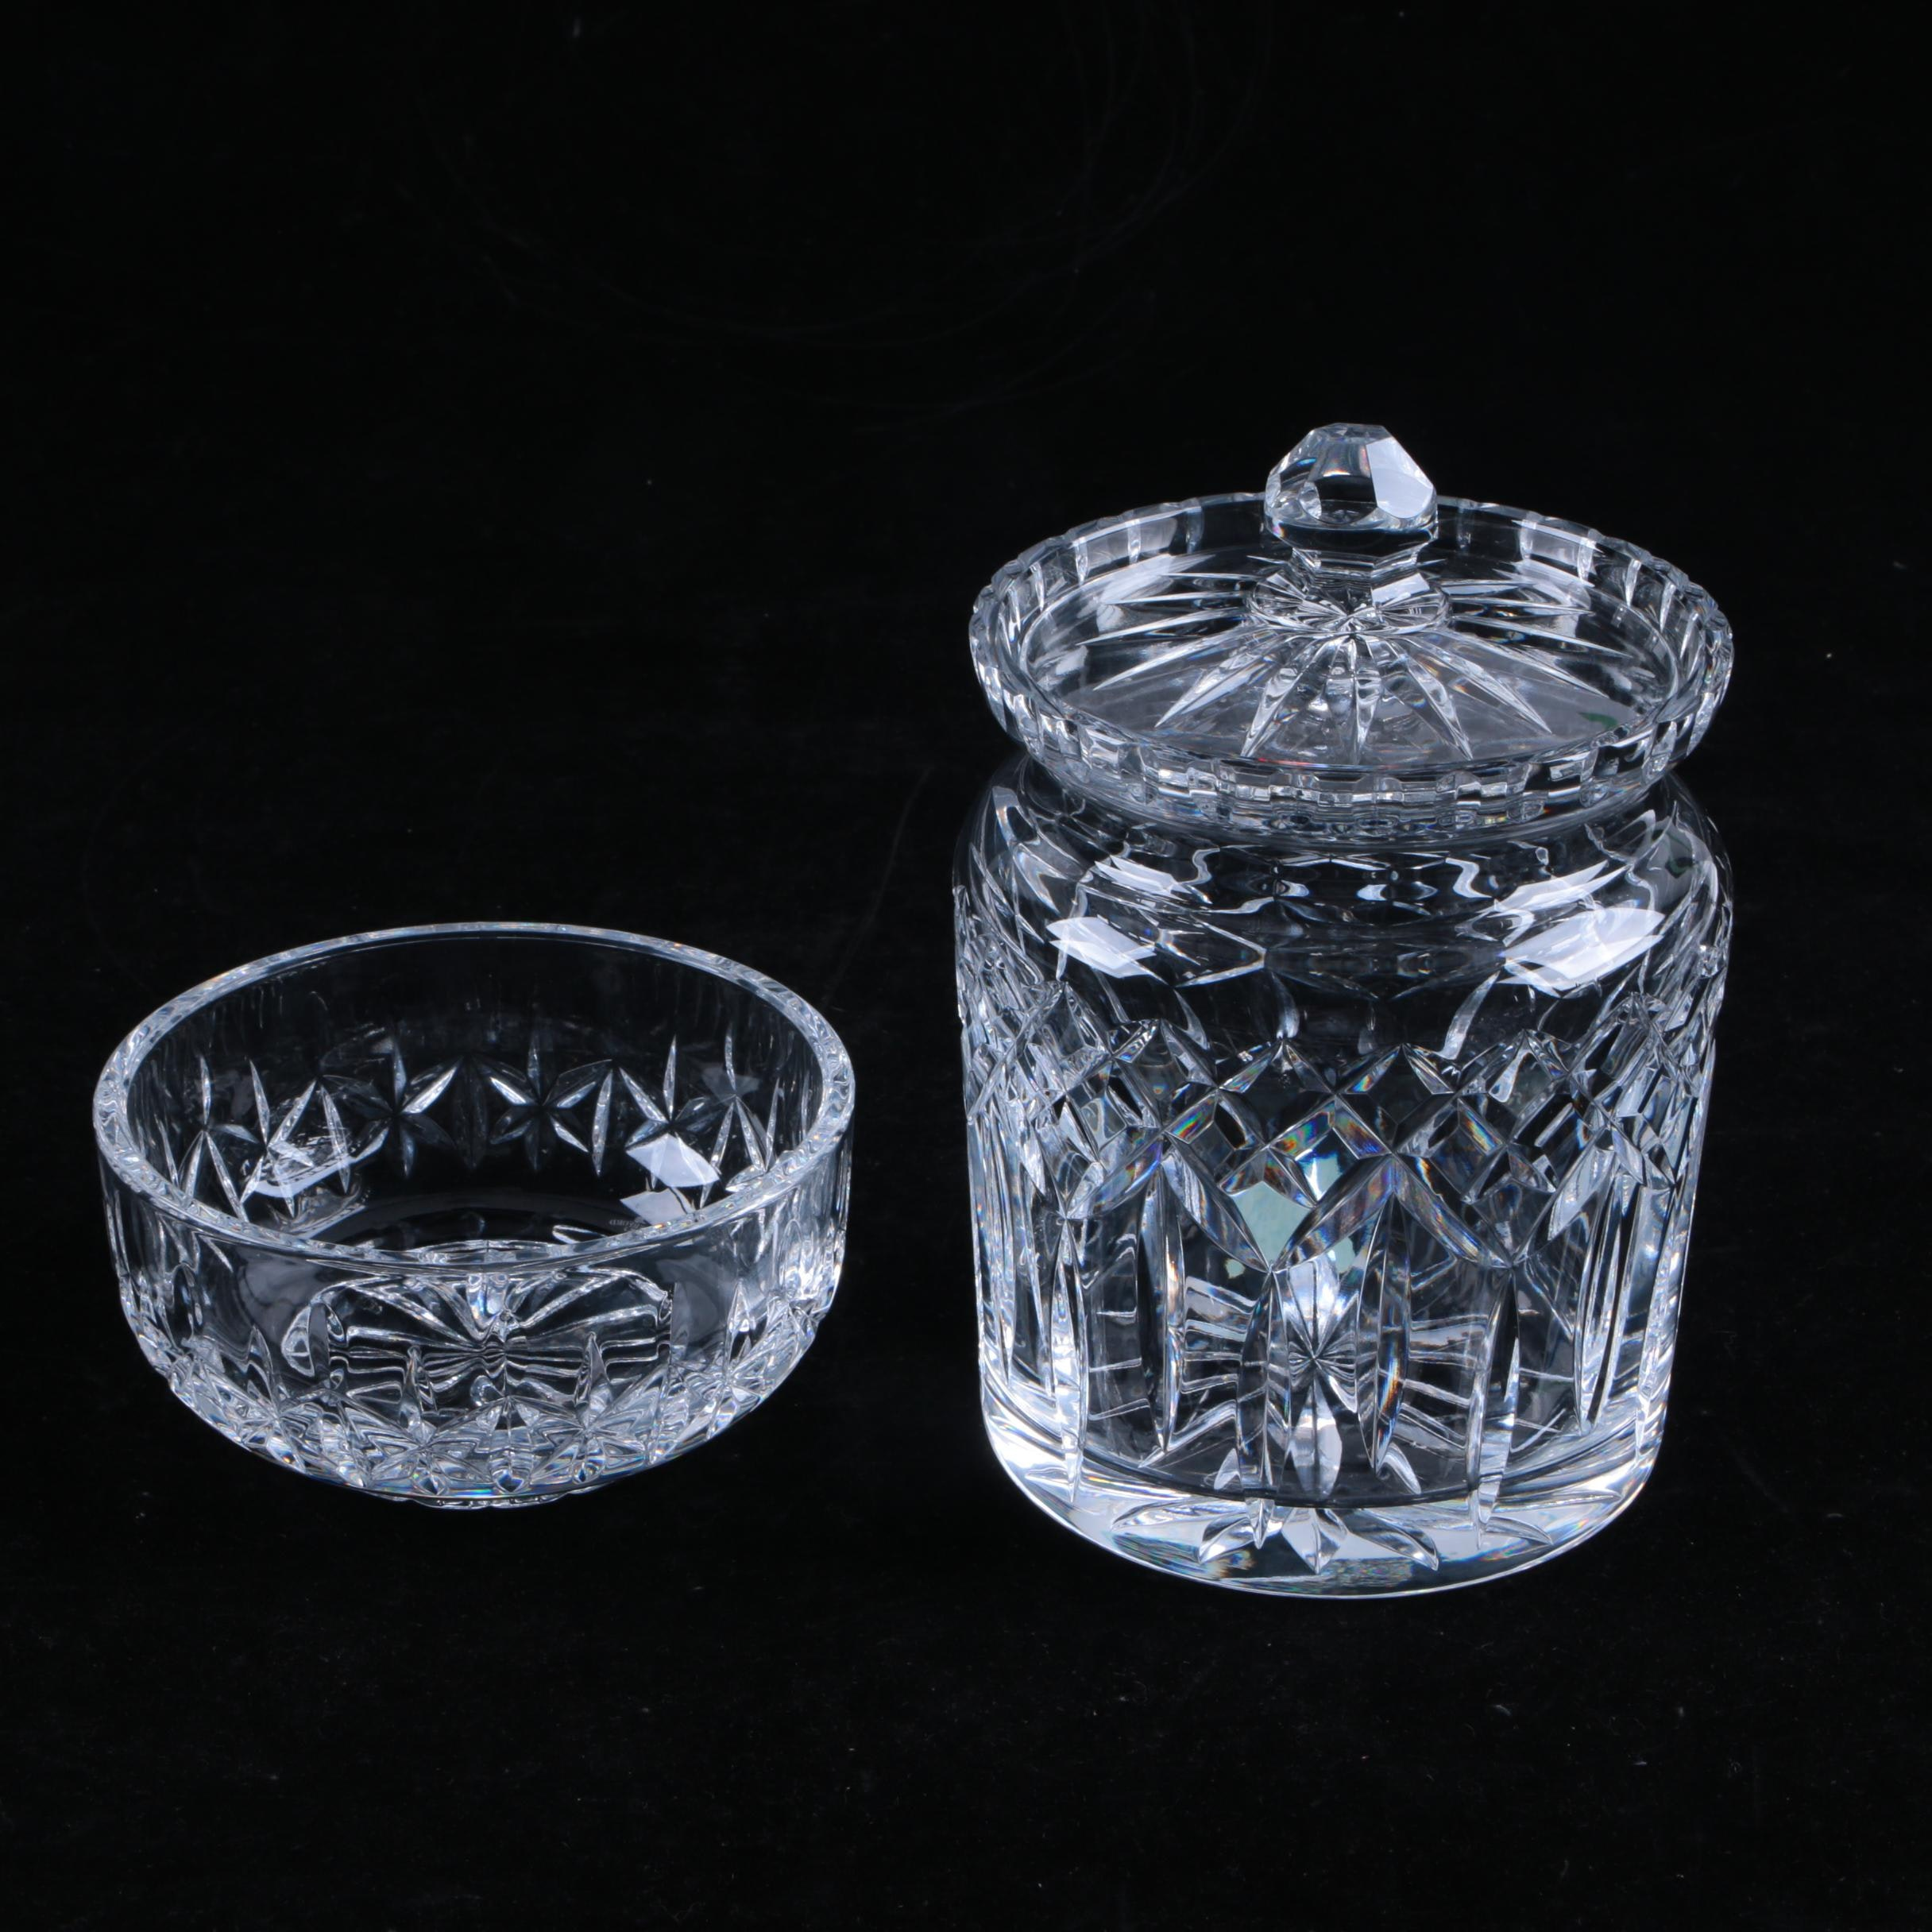 Waterford Crystal Dish and Jar